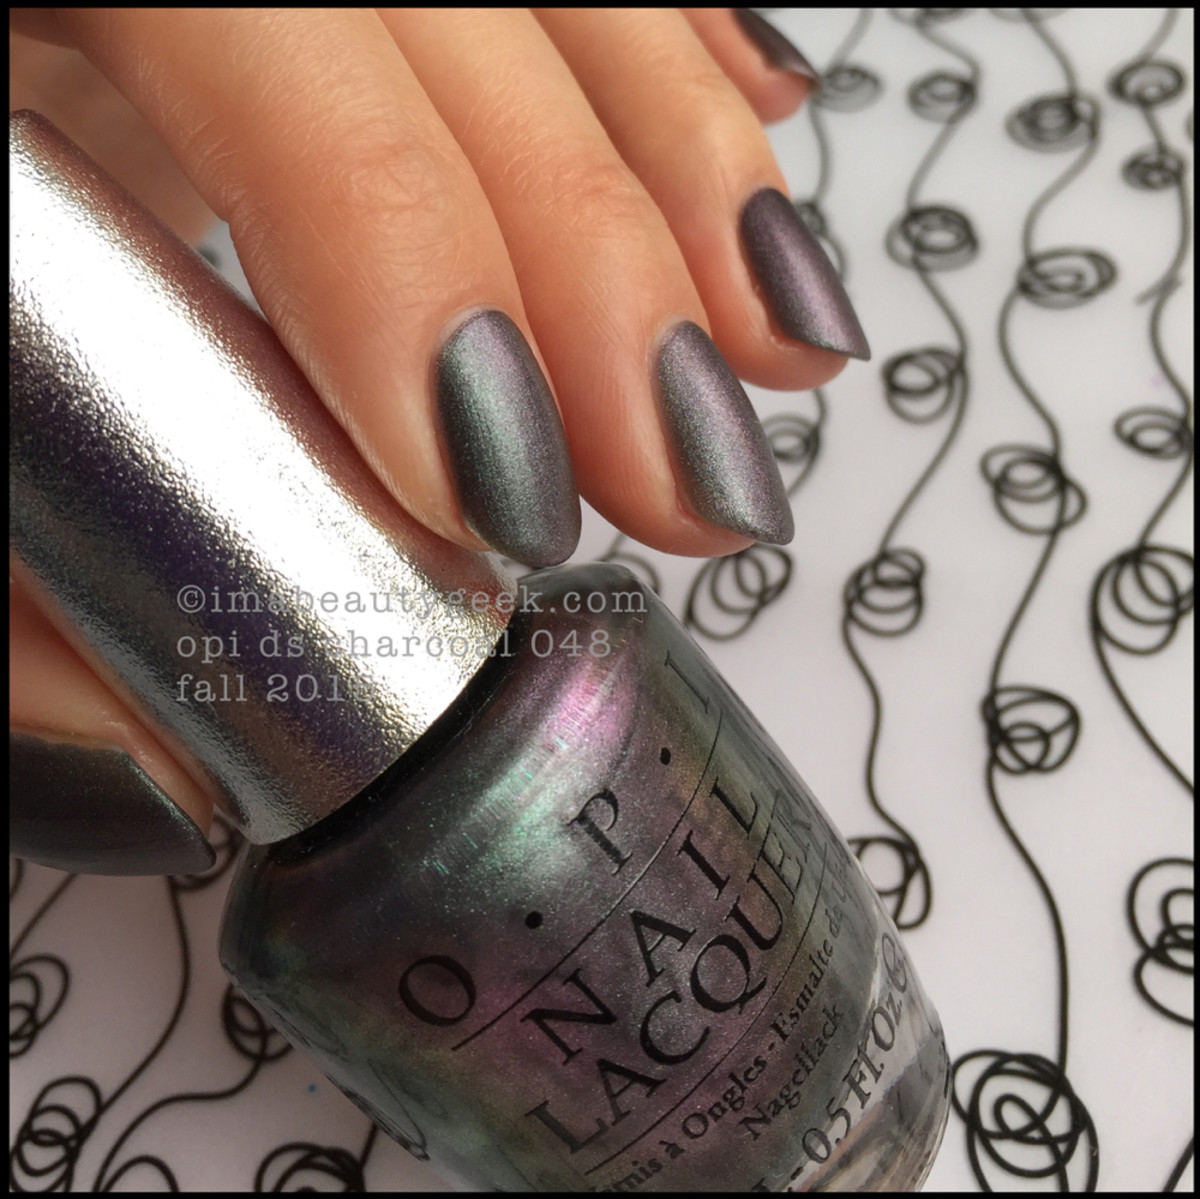 OPI DS 2015_OPI Charcoal DS 048 Fall_6